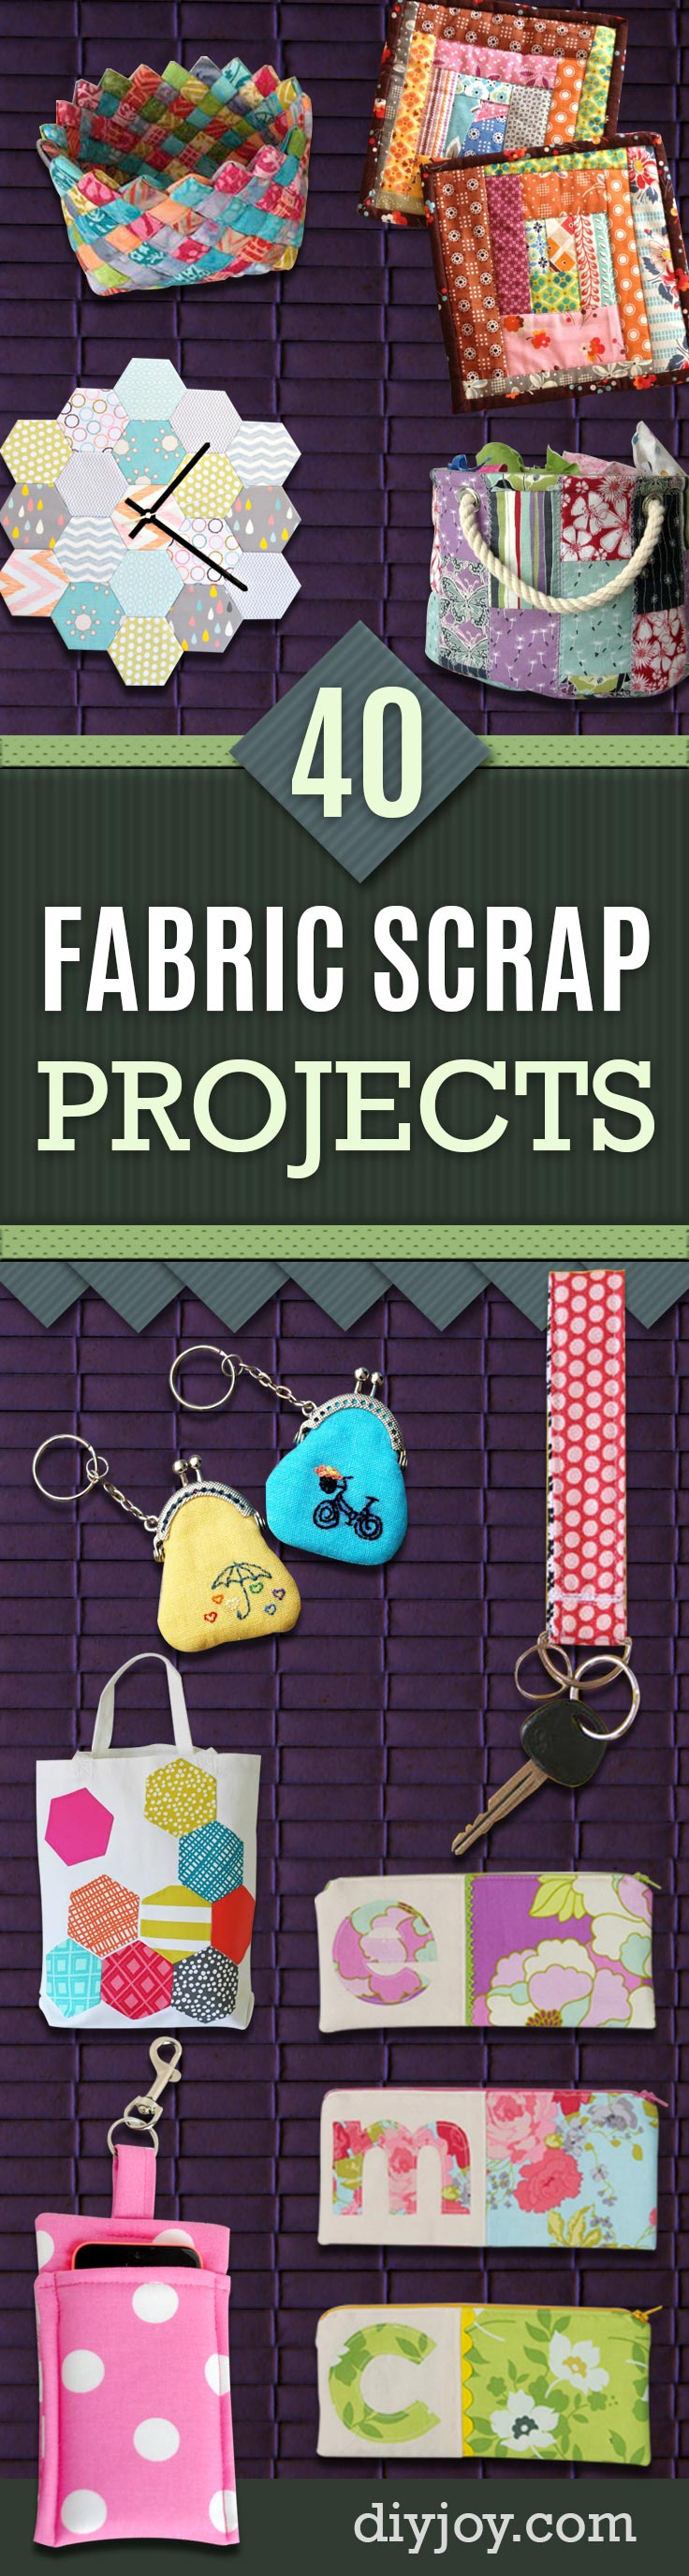 Cool Crafts You Can Make With Fabric Scraps   Creative DIY Sewing Projects  And Things To